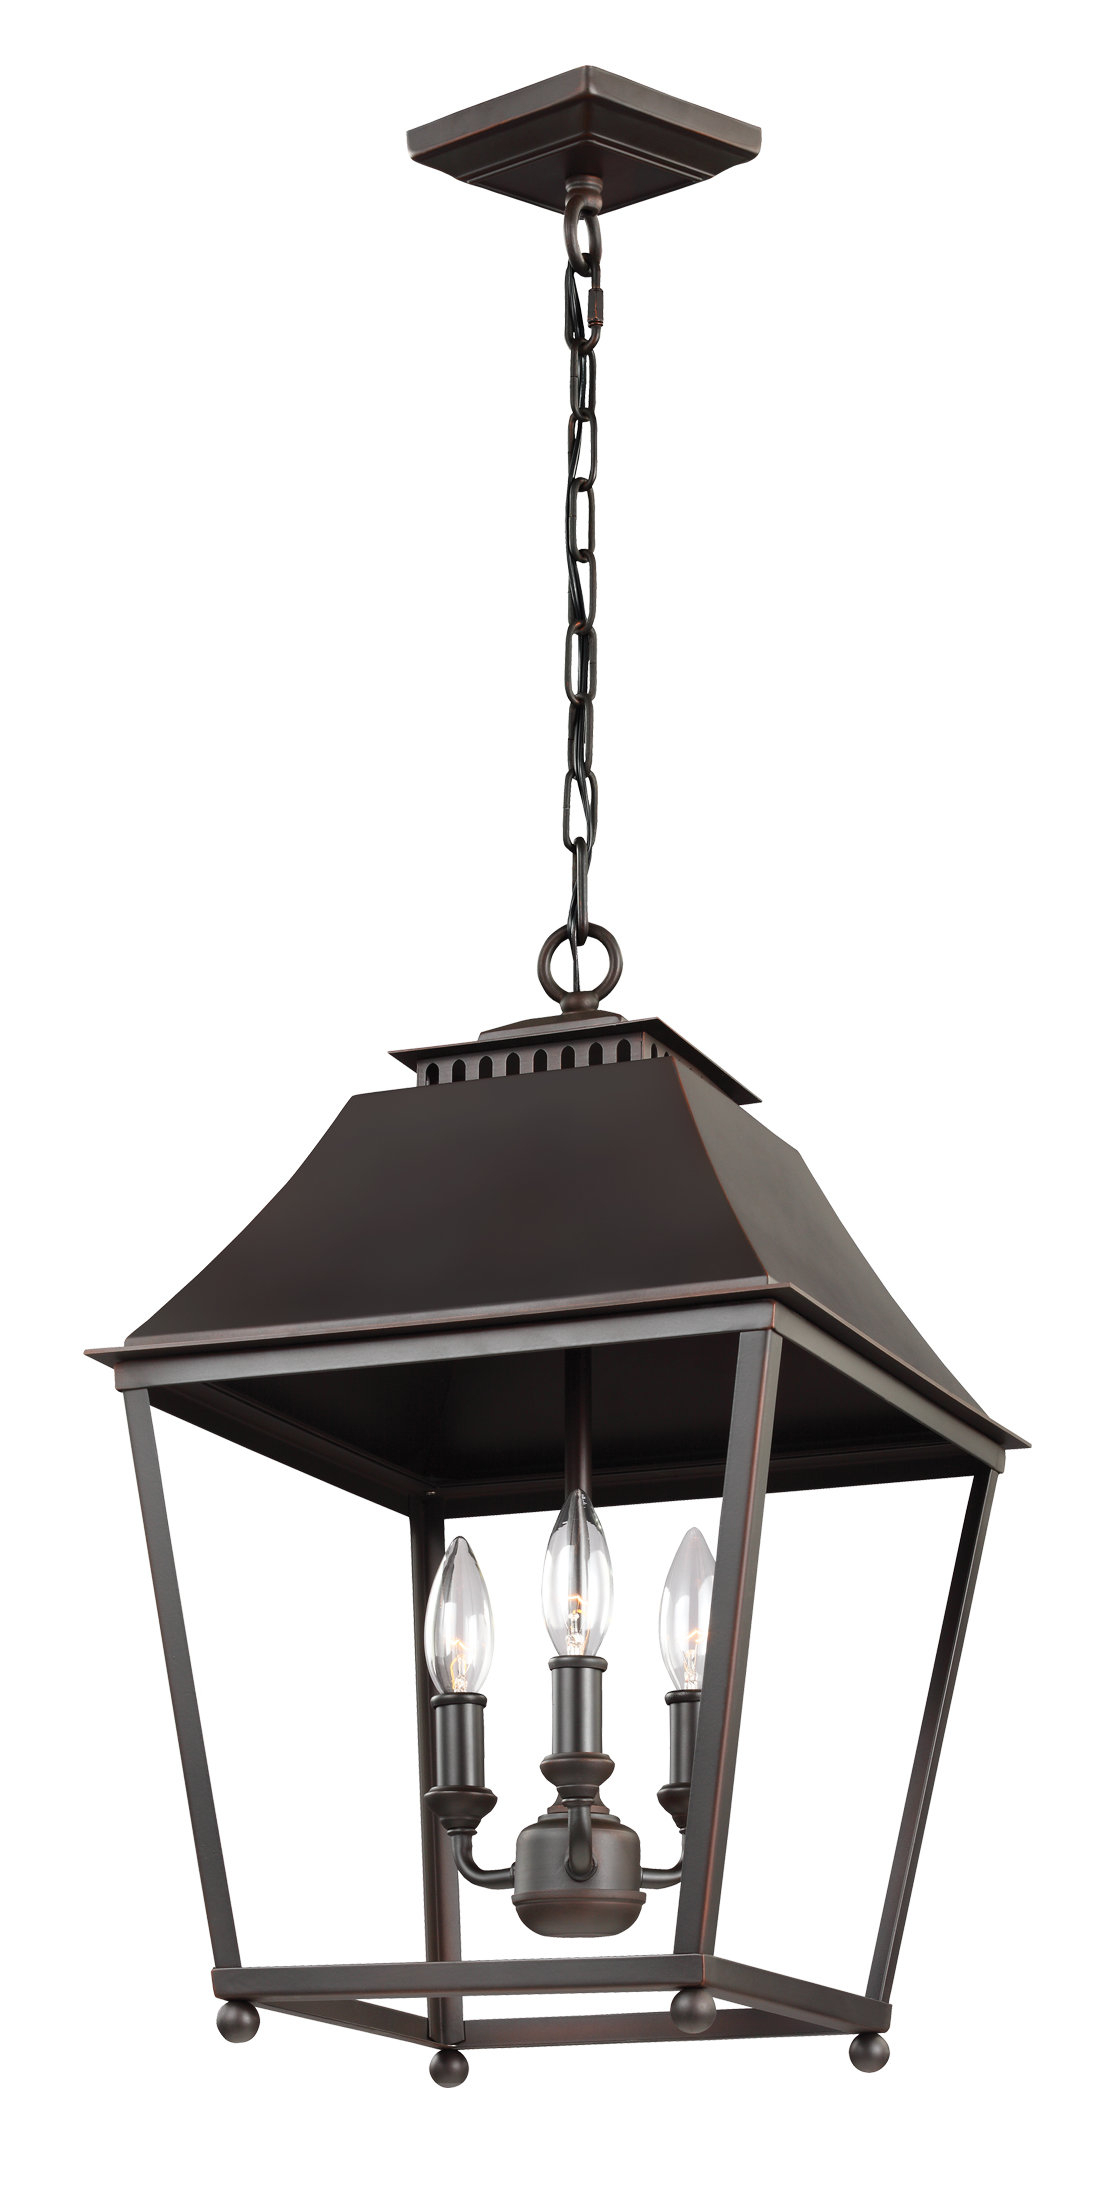 Gracie Oaks Darwin 3-Light Lantern Geometric Pendant with Armande 3-Light Lantern Geometric Pendants (Image 20 of 30)